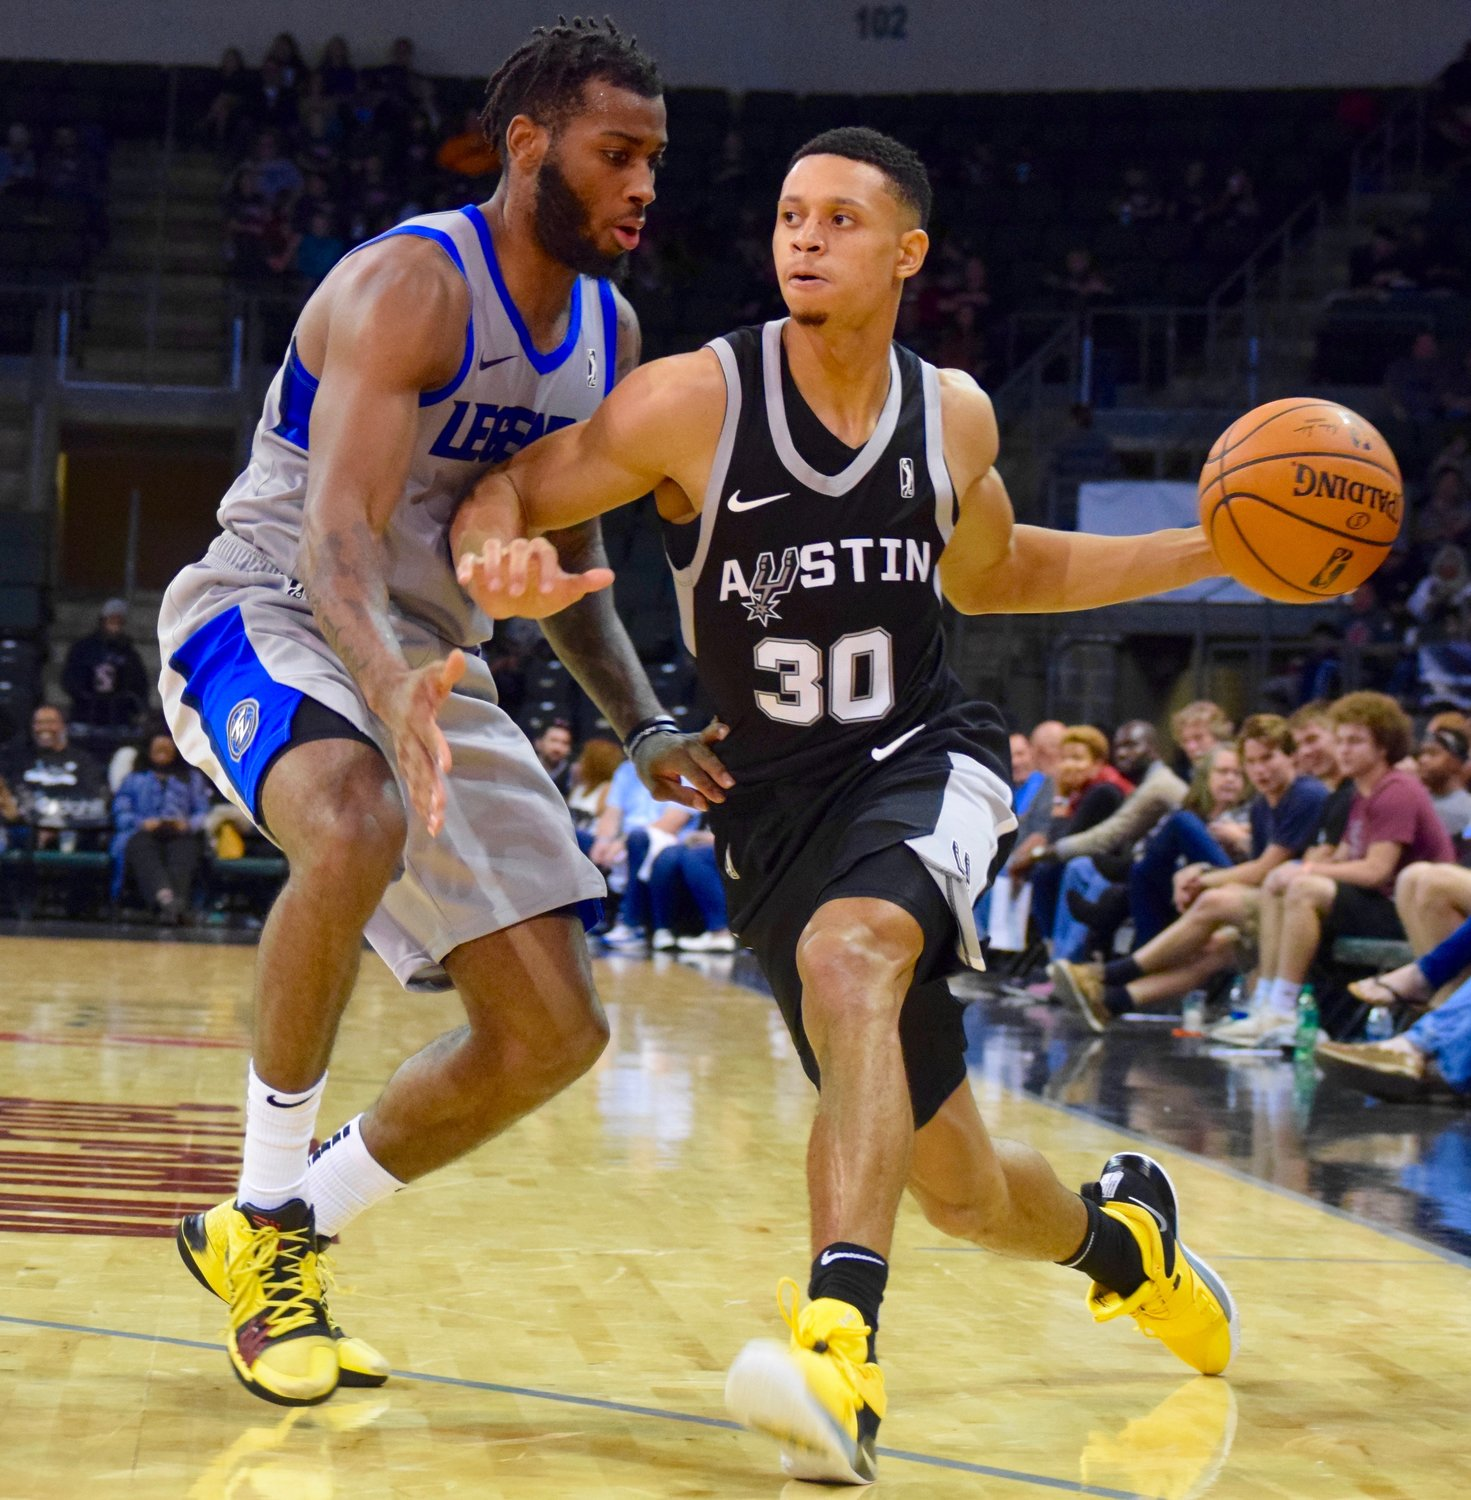 Jordan Green scored four points as the Austin Spurs lost to the Texas Legends 126-120 on Saturday night.